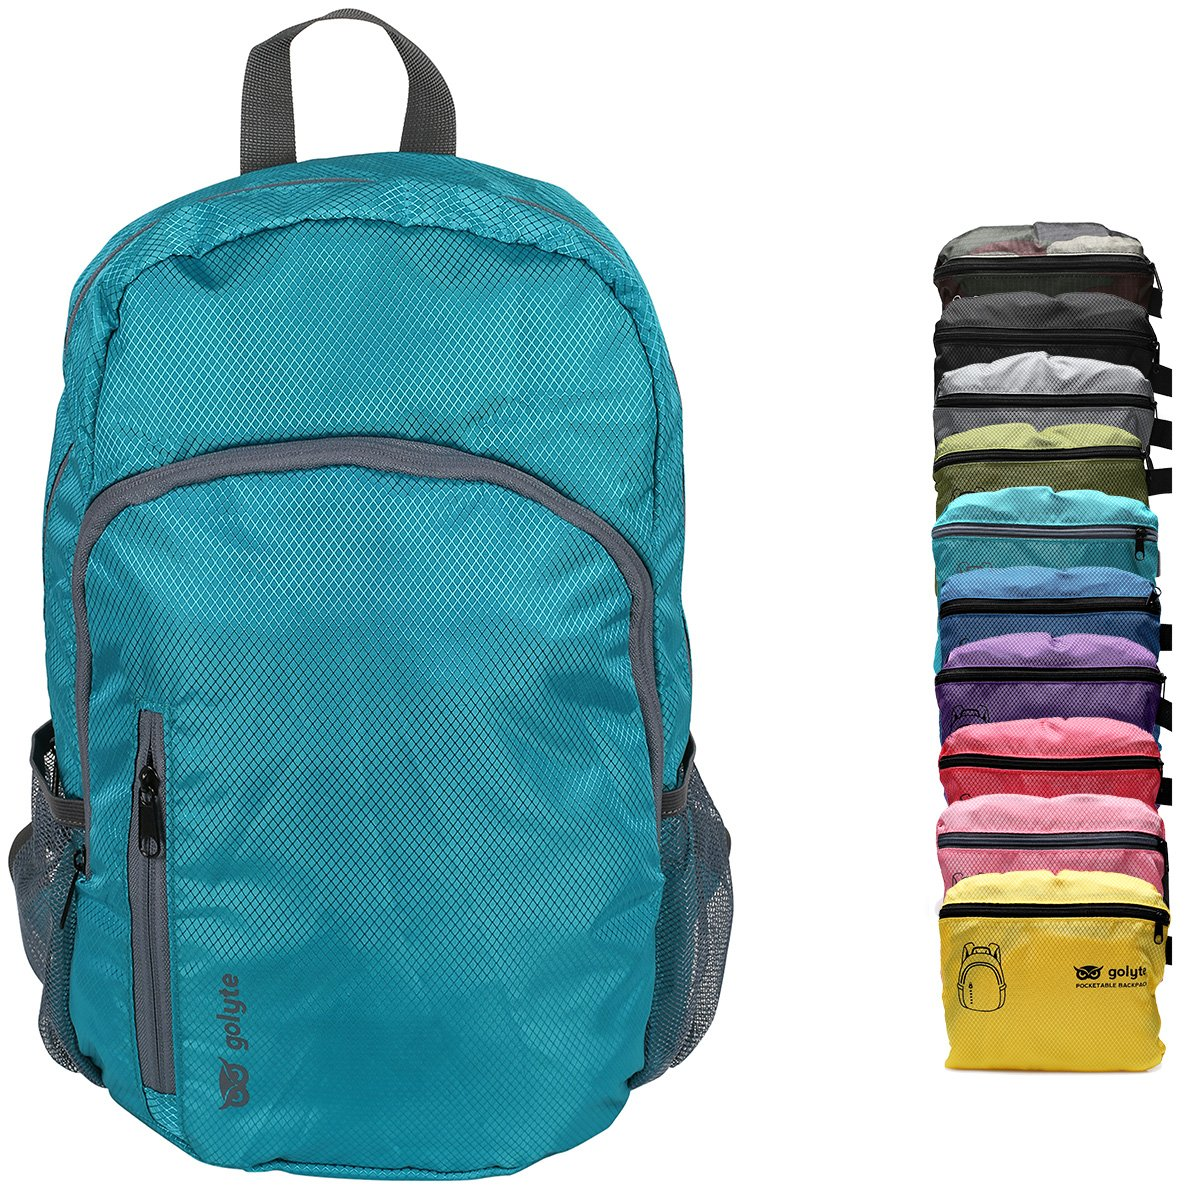 Golyte Lightweight Packable Travel Hiking Backpack Daypack Aqua Blue for Men Women Unisex by Golyte